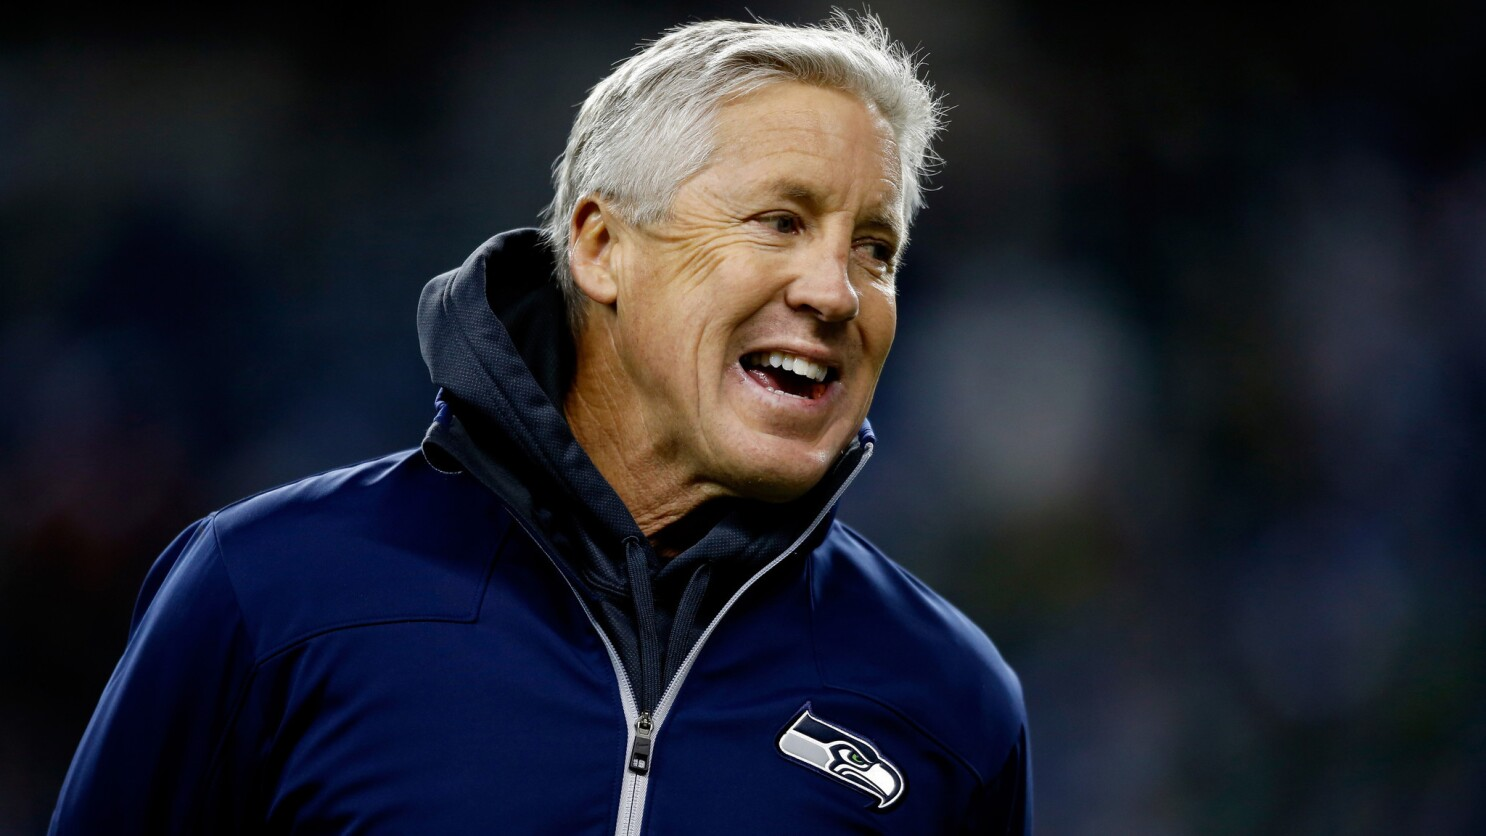 Pete Carroll Continues To Defend Usc As Sanctions Come To End Los Angeles Times